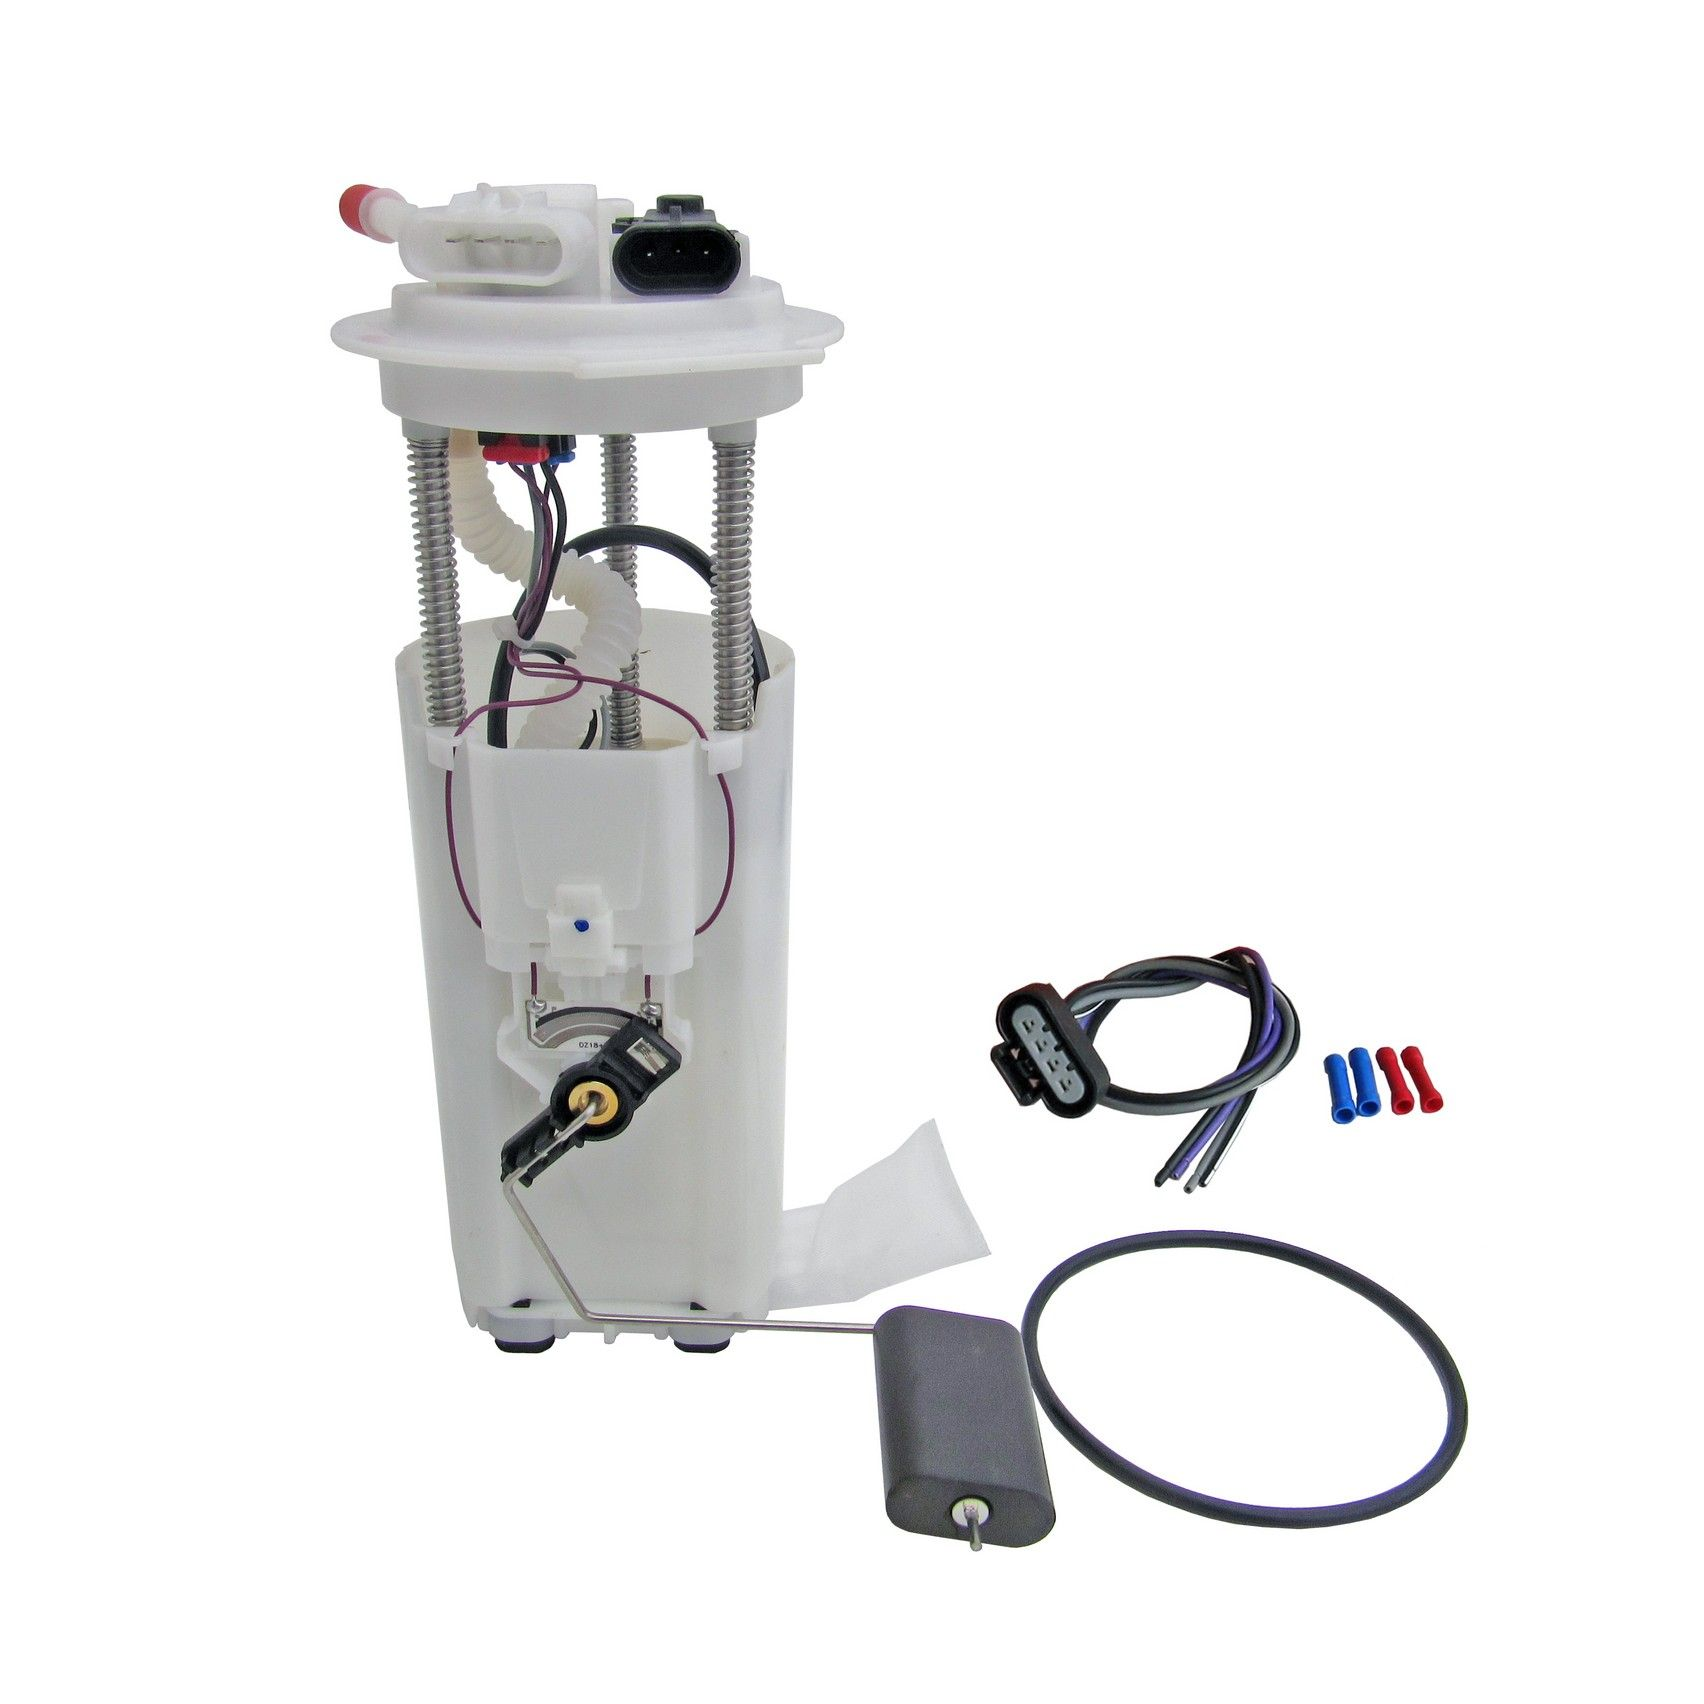 2004 pontiac montana fuel pump module assembly 6 cyl 3 4l (autobest f2563a)  includes